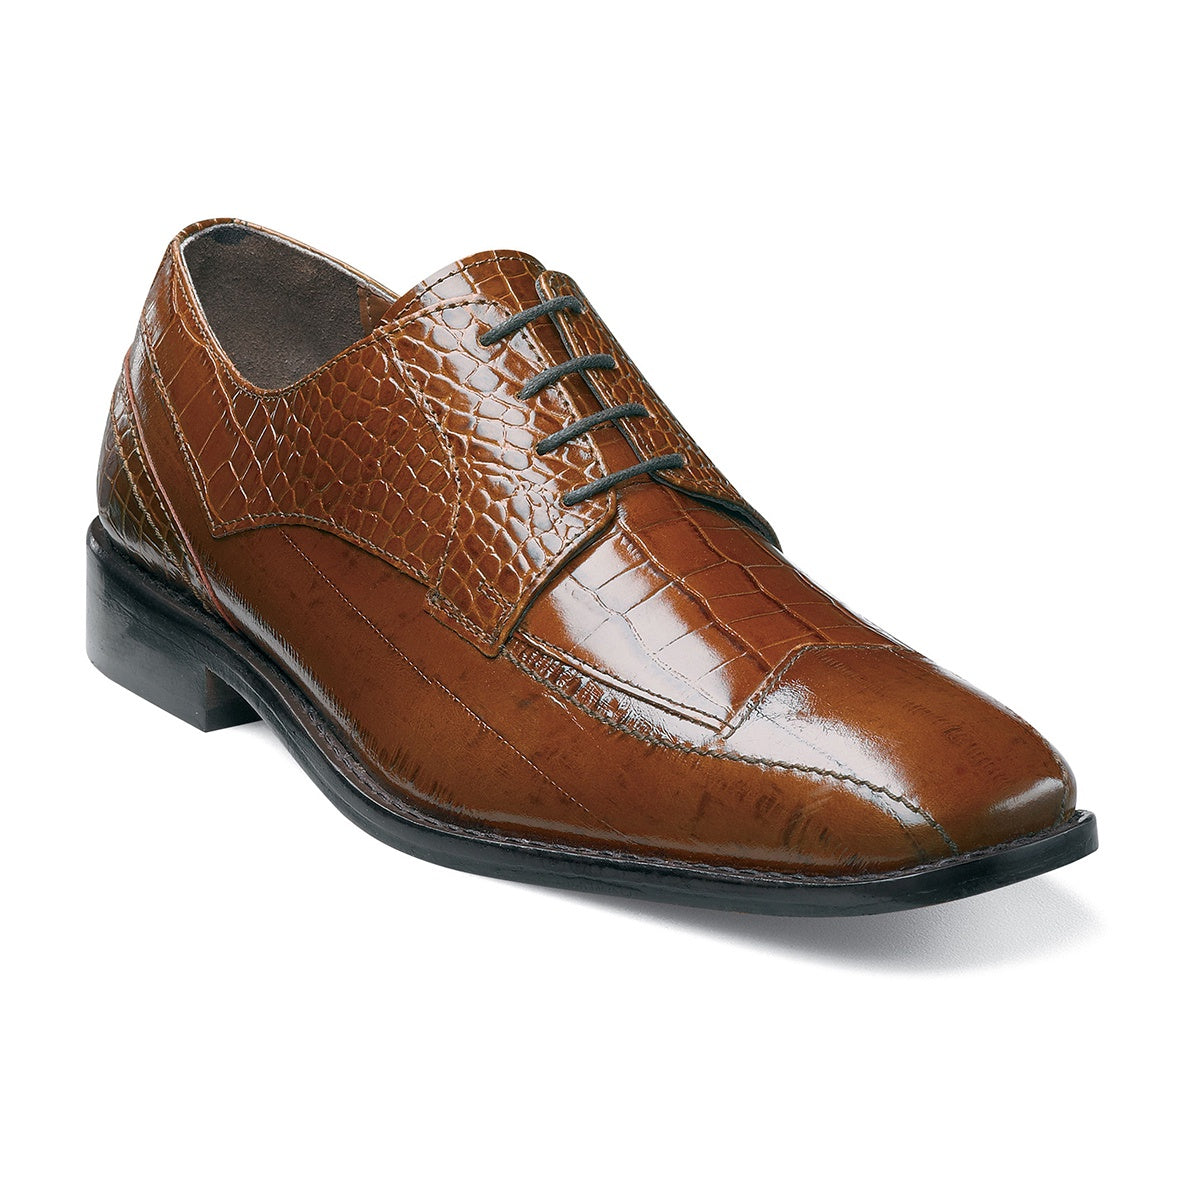 Stacy Adams Tarviso Oxford - Tobacco